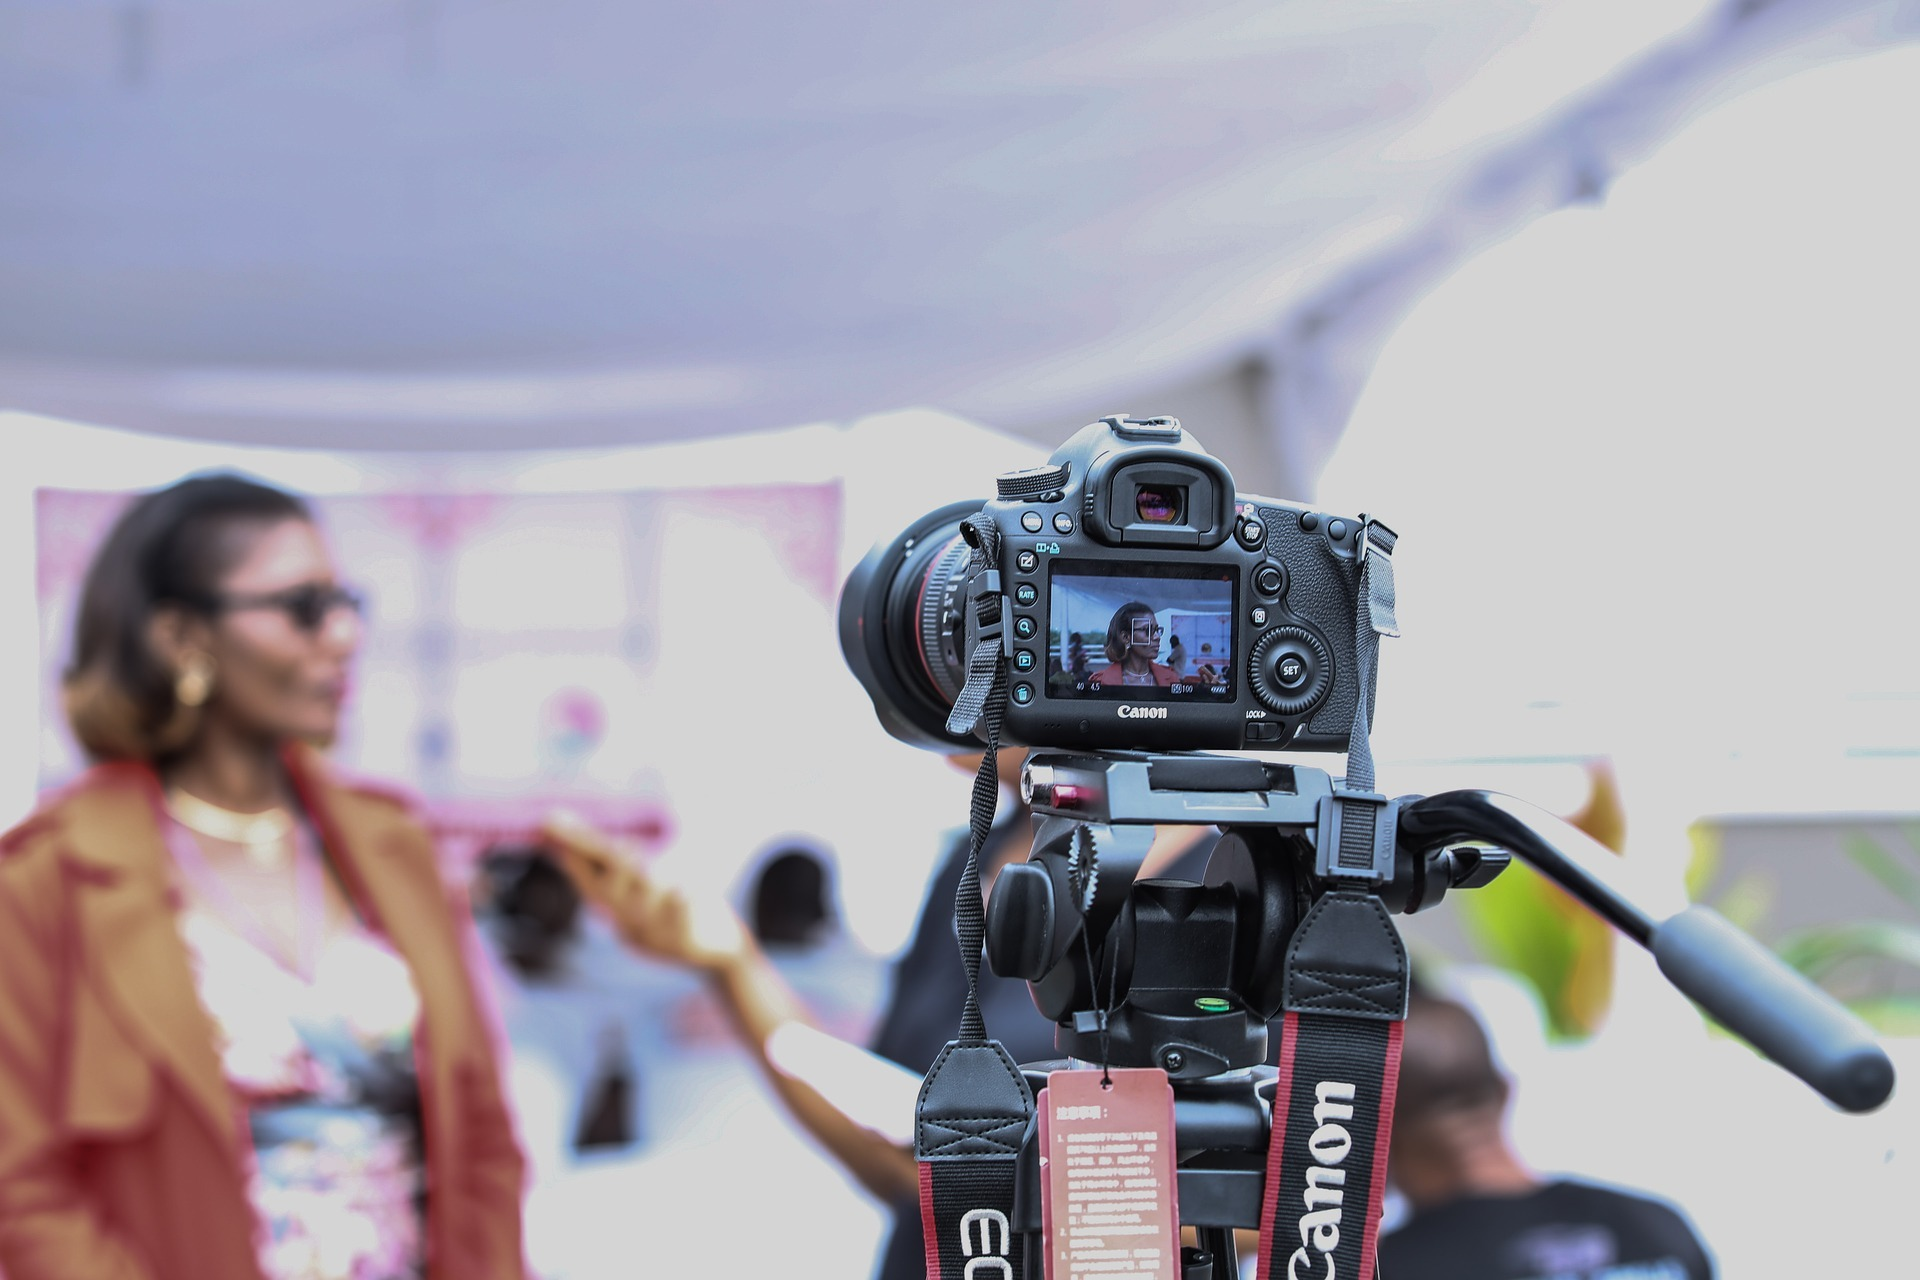 Canon camera recording a woman being interviewed